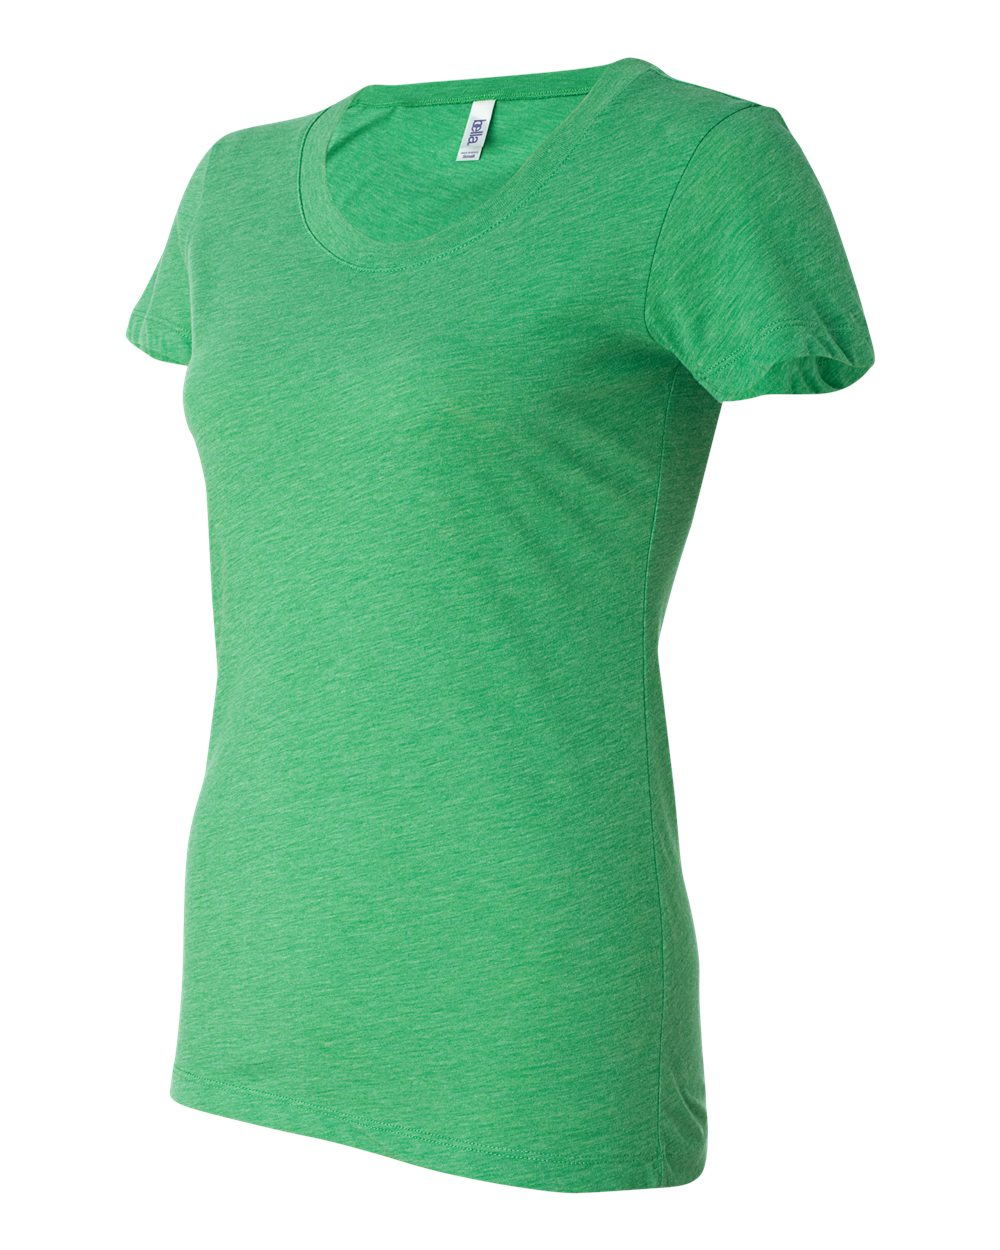 Bella-Canvas-Women-039-s-Triblend-Short-Sleeve-T-Shirt-B8413-S-2XL thumbnail 36